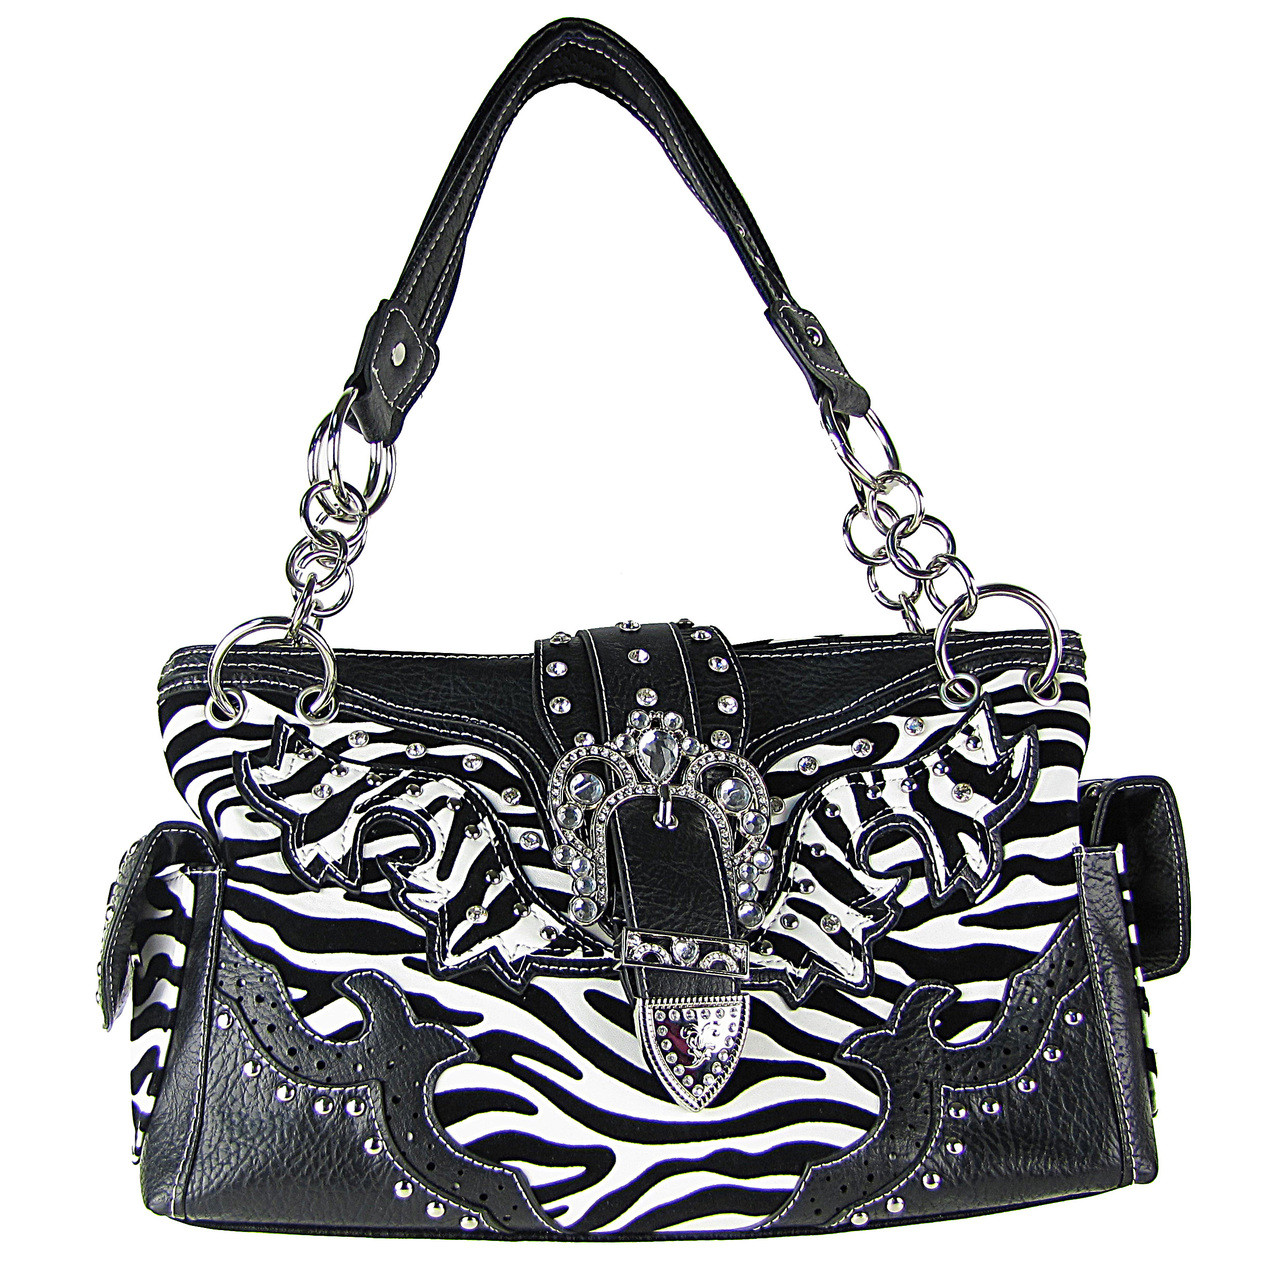 BLACK ZEBRA STUDDED BUCKLE RHINESTONE LOOK SHOULDER HANDBAG HB1-W37FZBLK